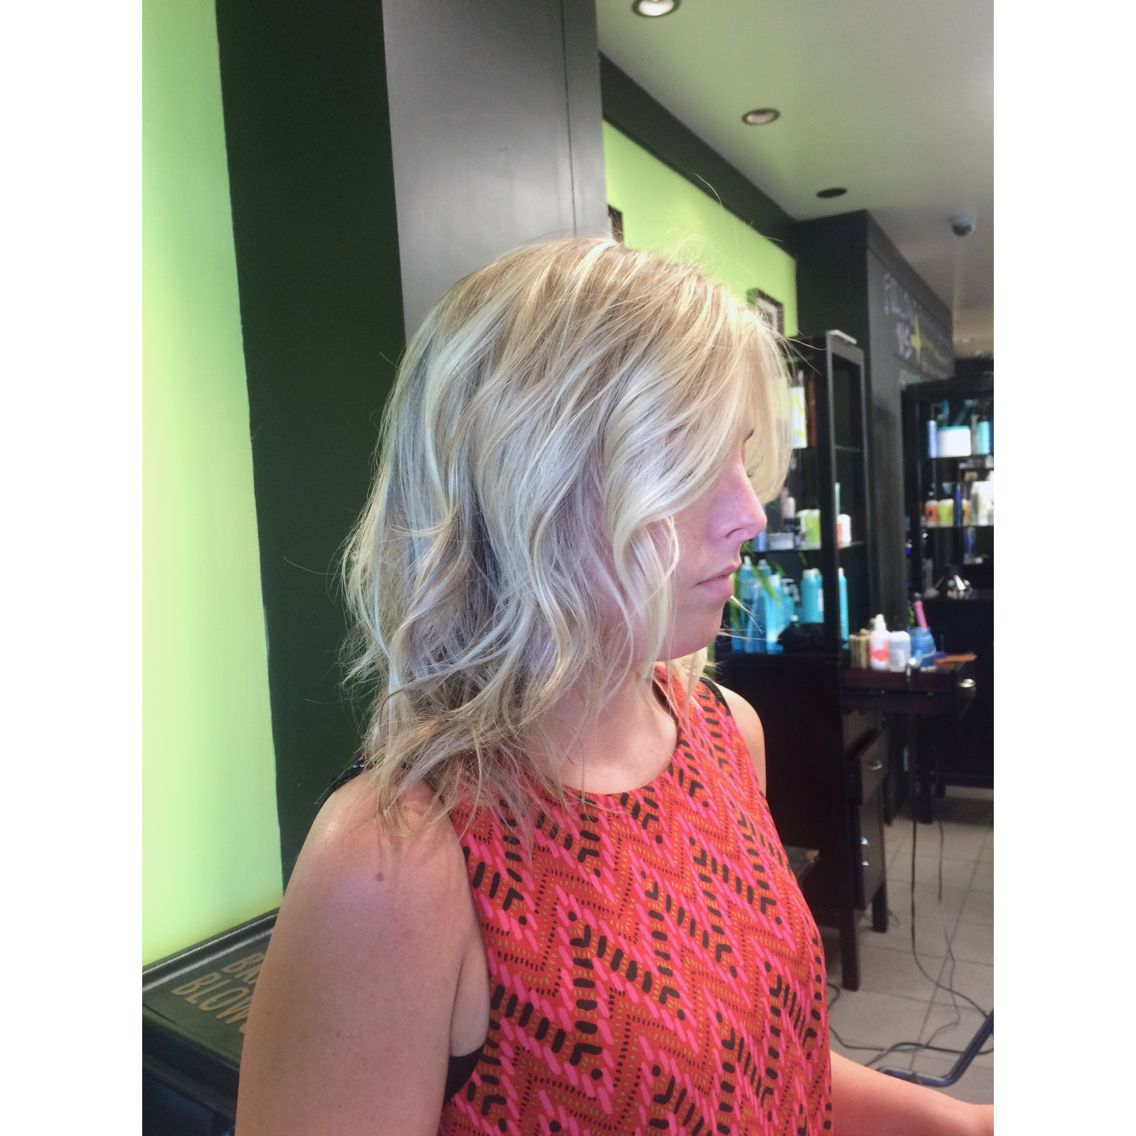 Ombre and highlights,beach blonde medium length hair #ombre #beachblonde #blonde #brightblonde #blondehair #hair #platinumblonde #highlights #mediumlengthhair